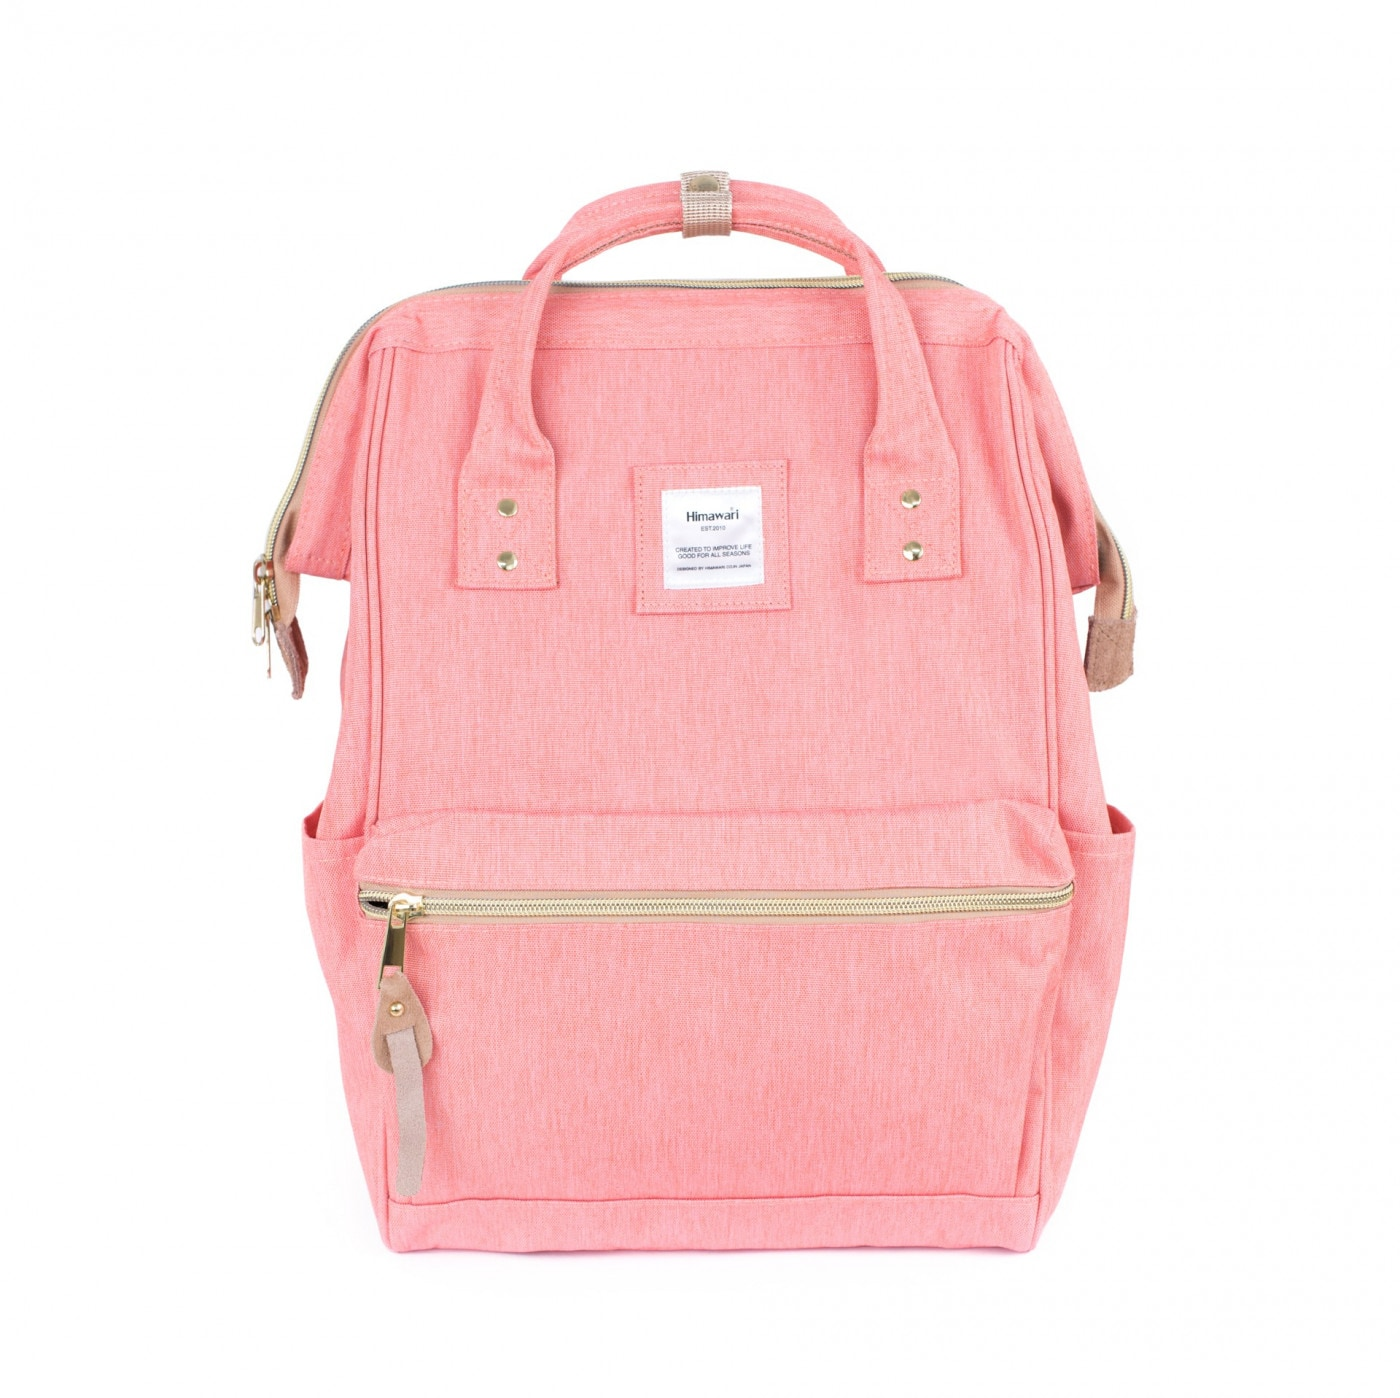 Art Of Polo Unisex's Backpack tr19292 Apricot